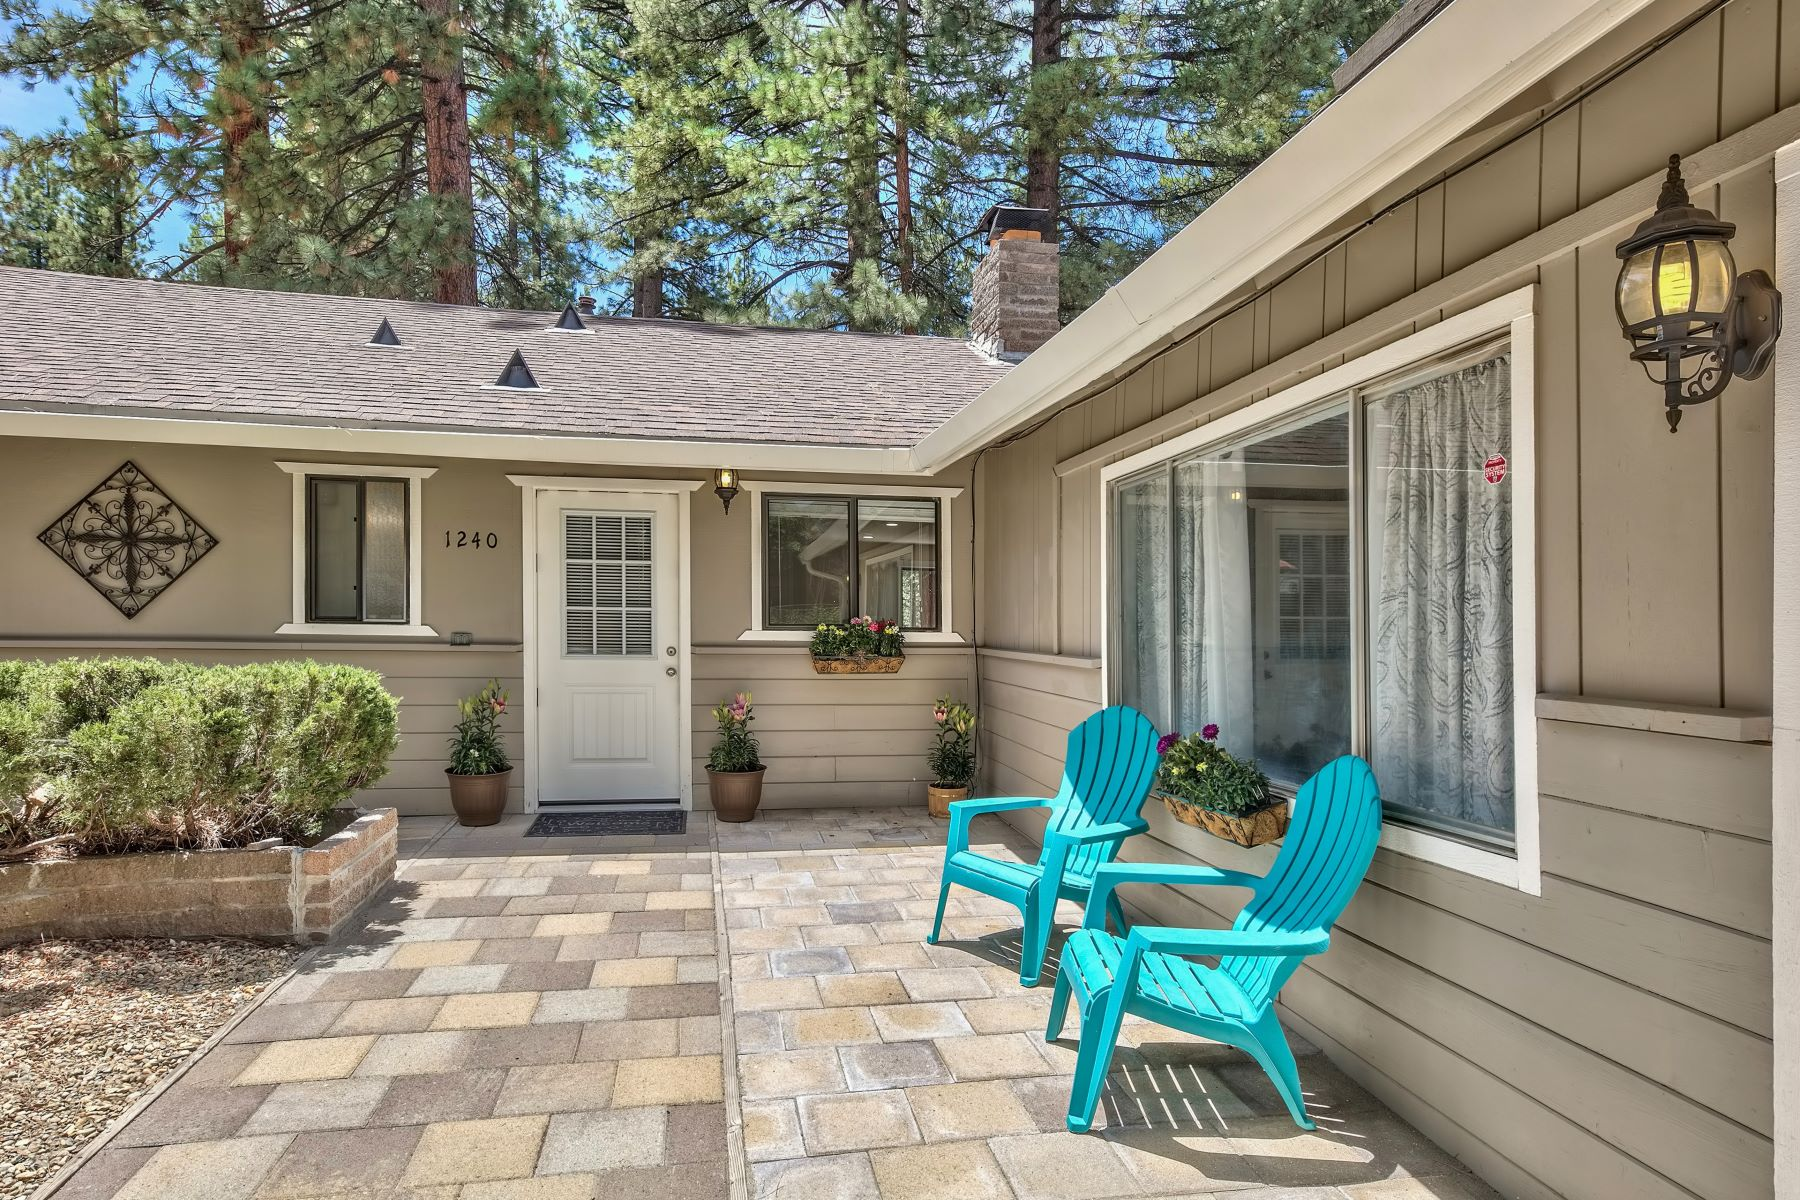 Additional photo for property listing at Tahoe Sierra Getaway on Meadow 1240 Beecher Avenue South Lake Tahoe, California 96150 United States